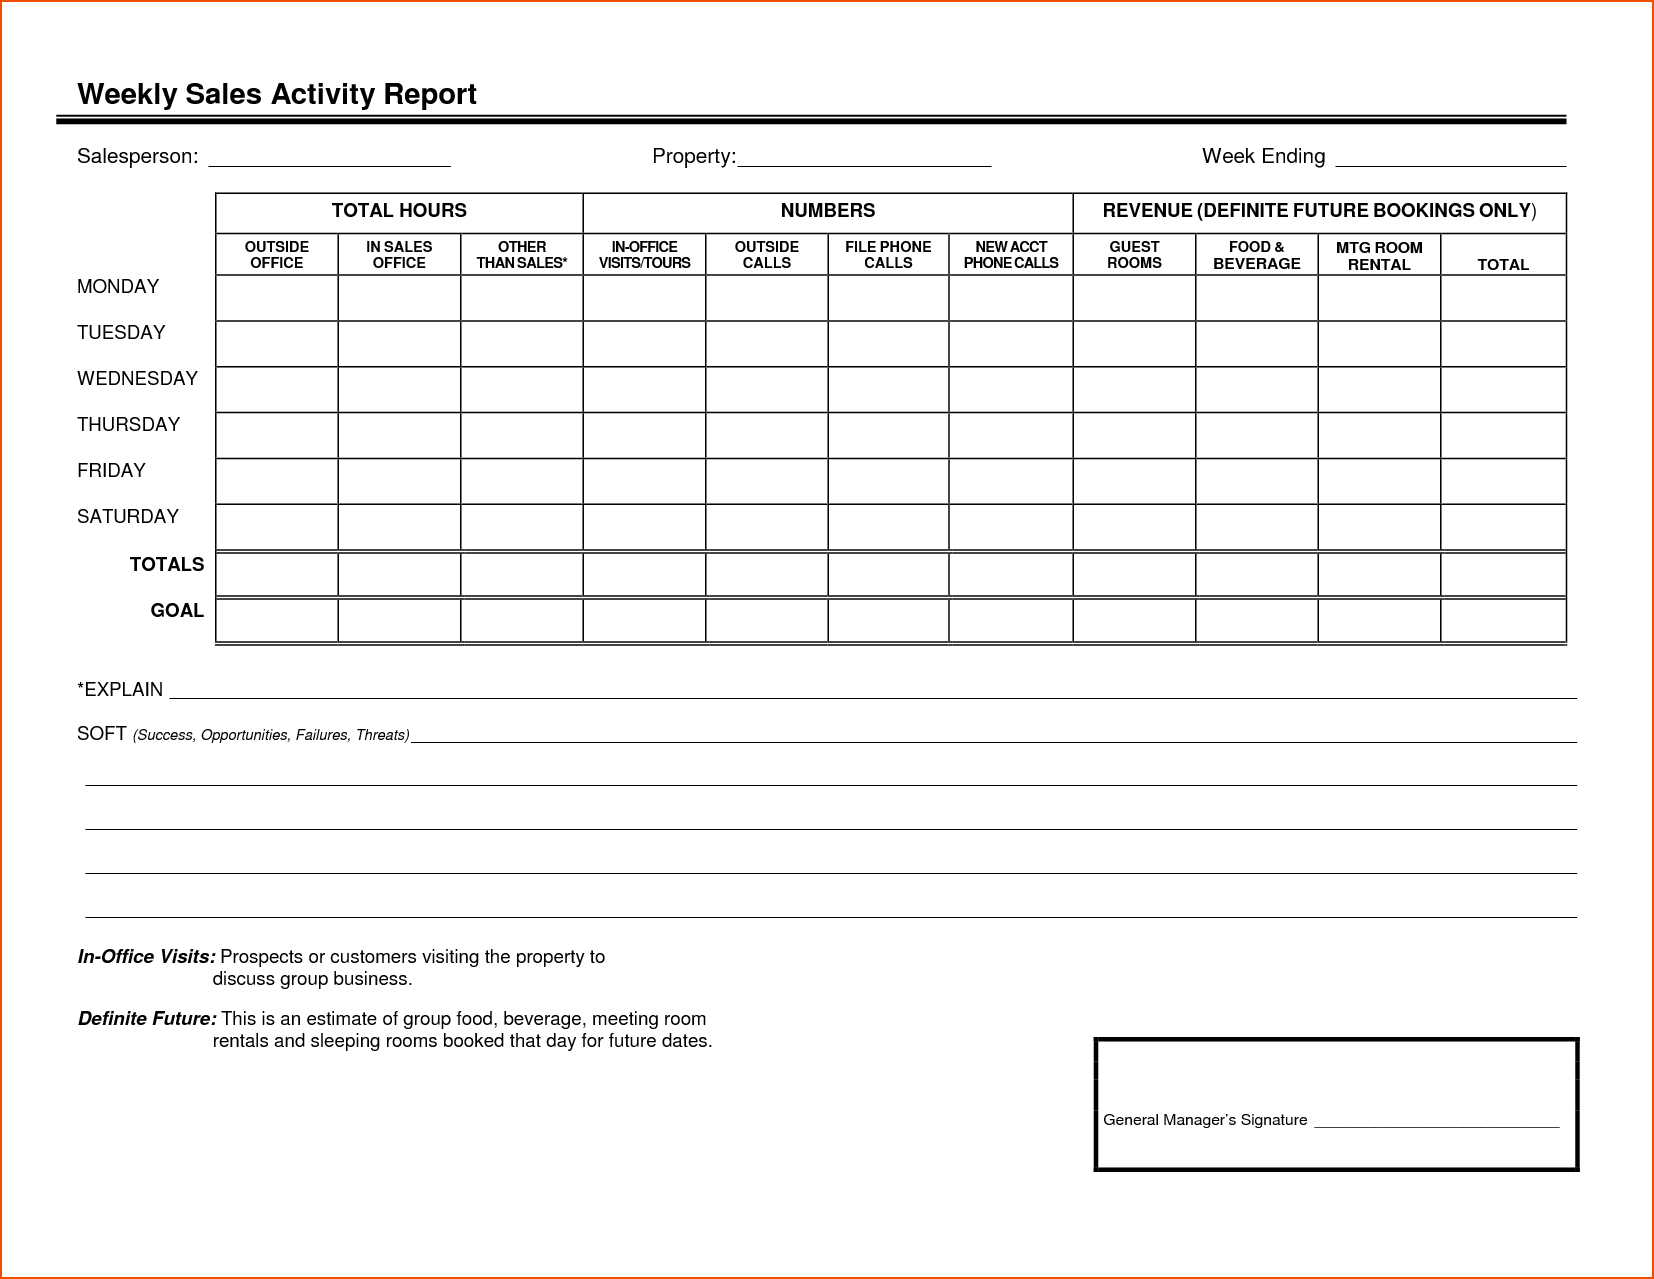 Sales forecast Spreadsheet Template and Monthly Sales Activity Report Template